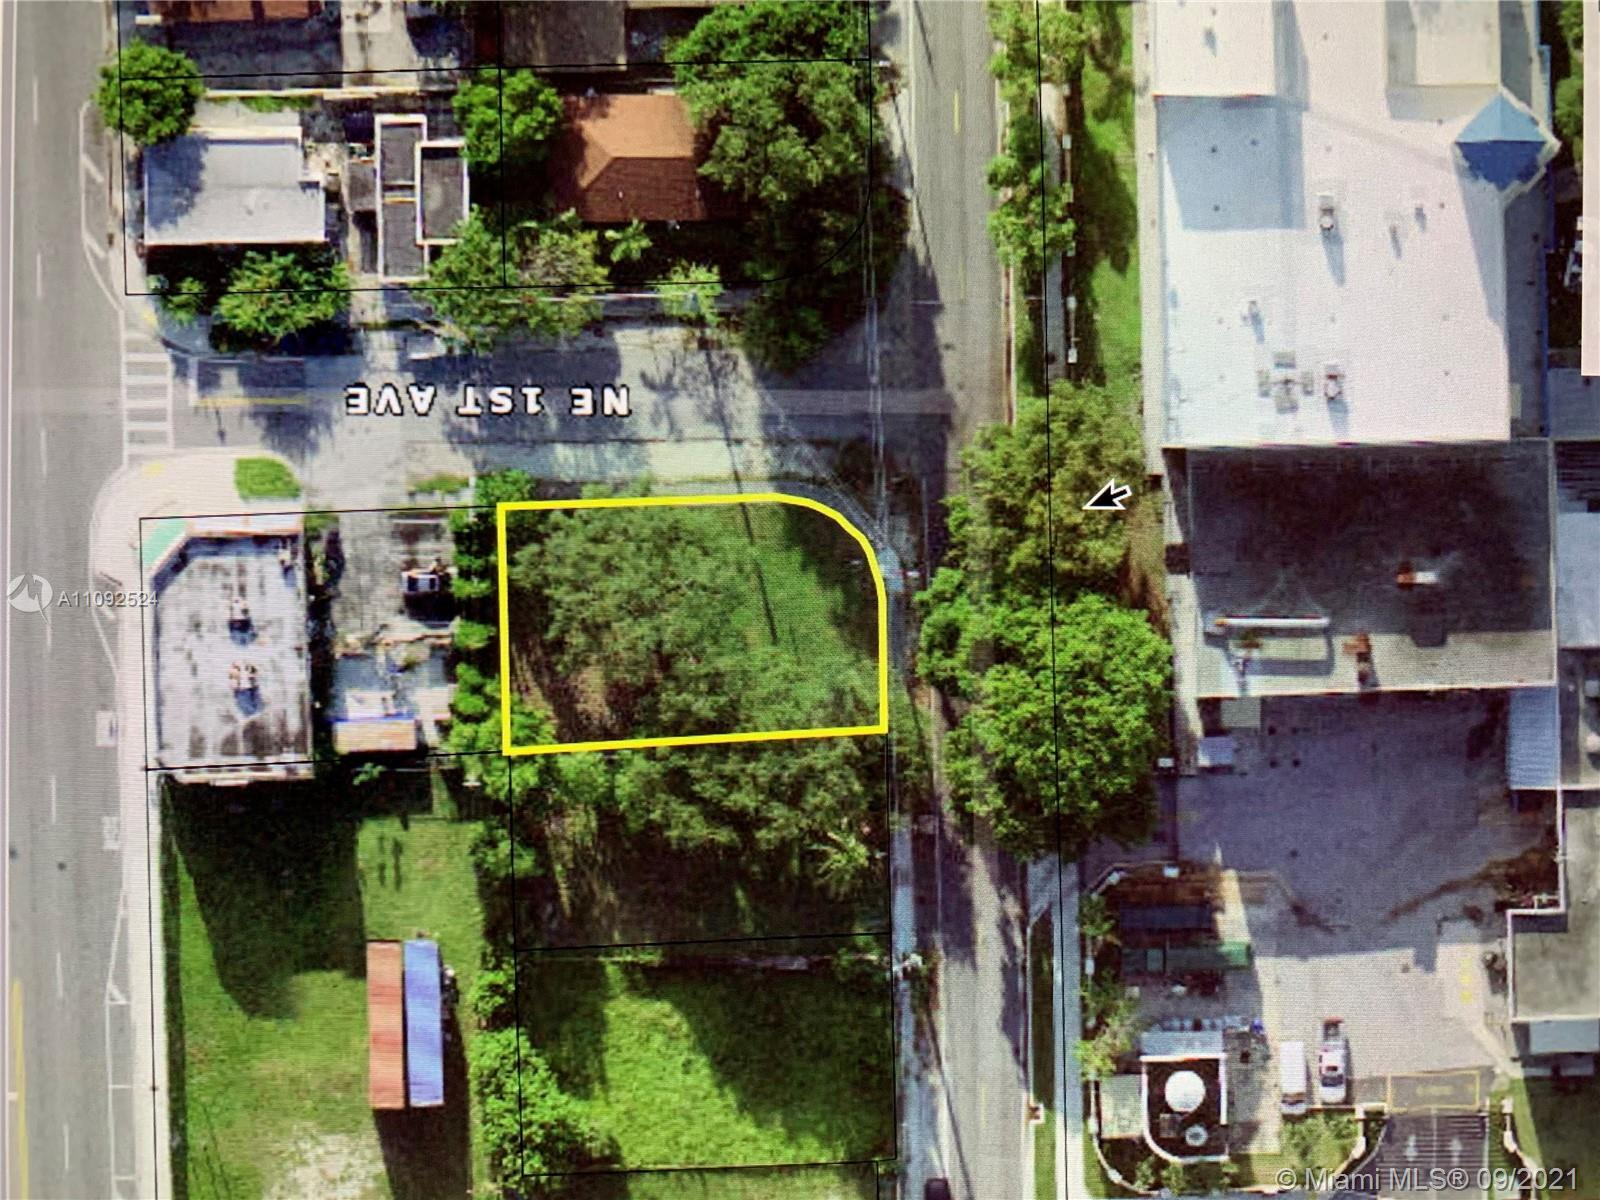 Well located Corner Lot. Zoned T4-O: residential or commercial uses. Easy access via 3 Miami streets